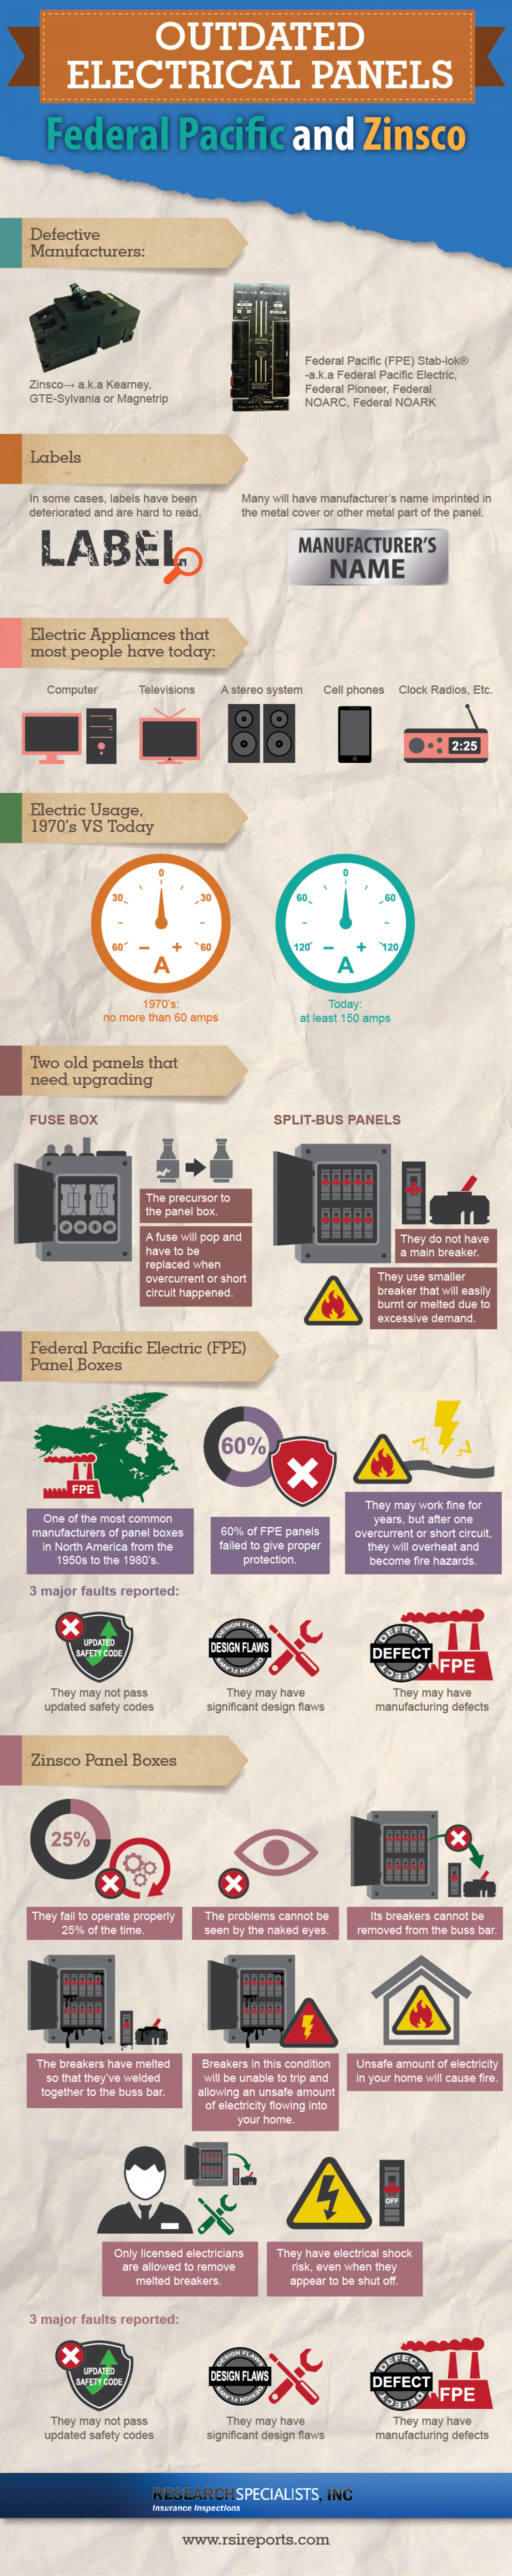 hight resolution of outdated electrical panels infographic